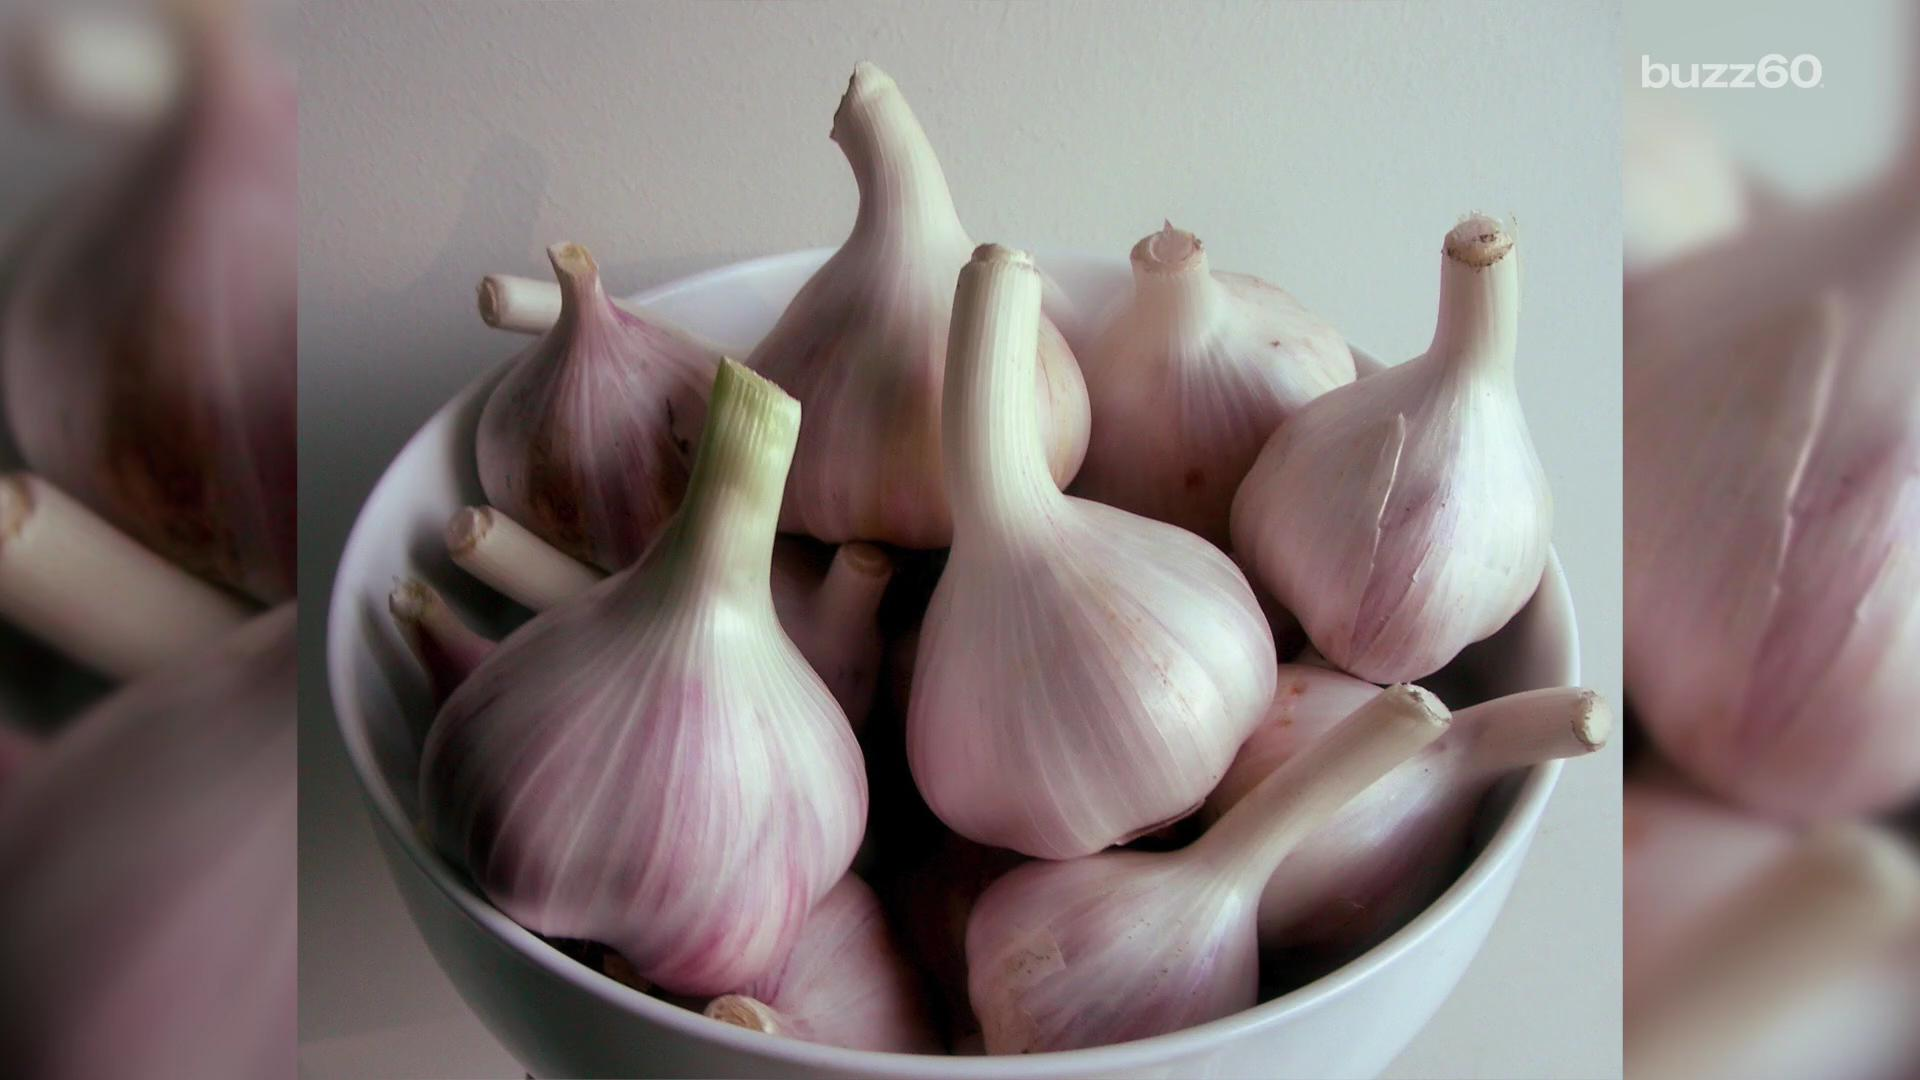 Men who eat lots of garlic smell better to women